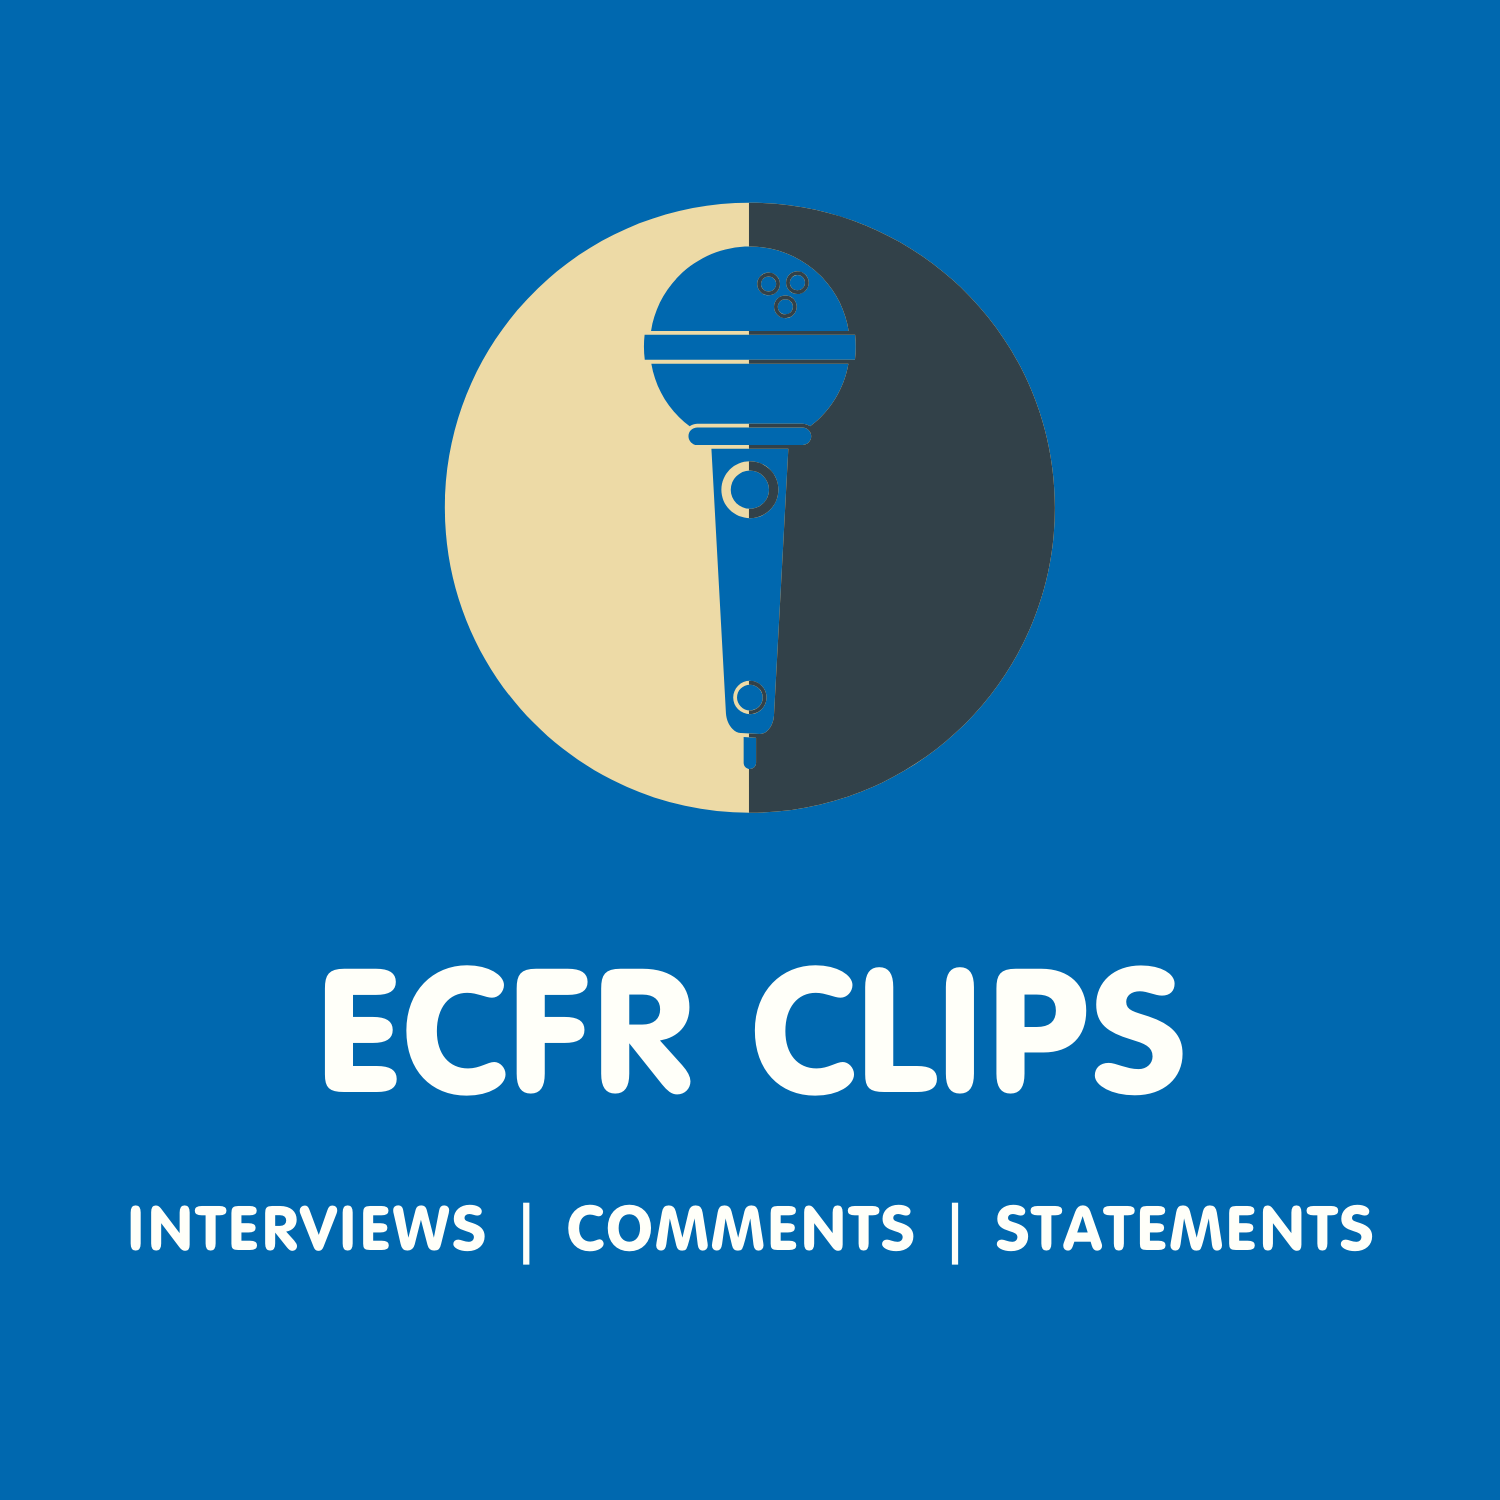 ECFR Clips' podcast cover